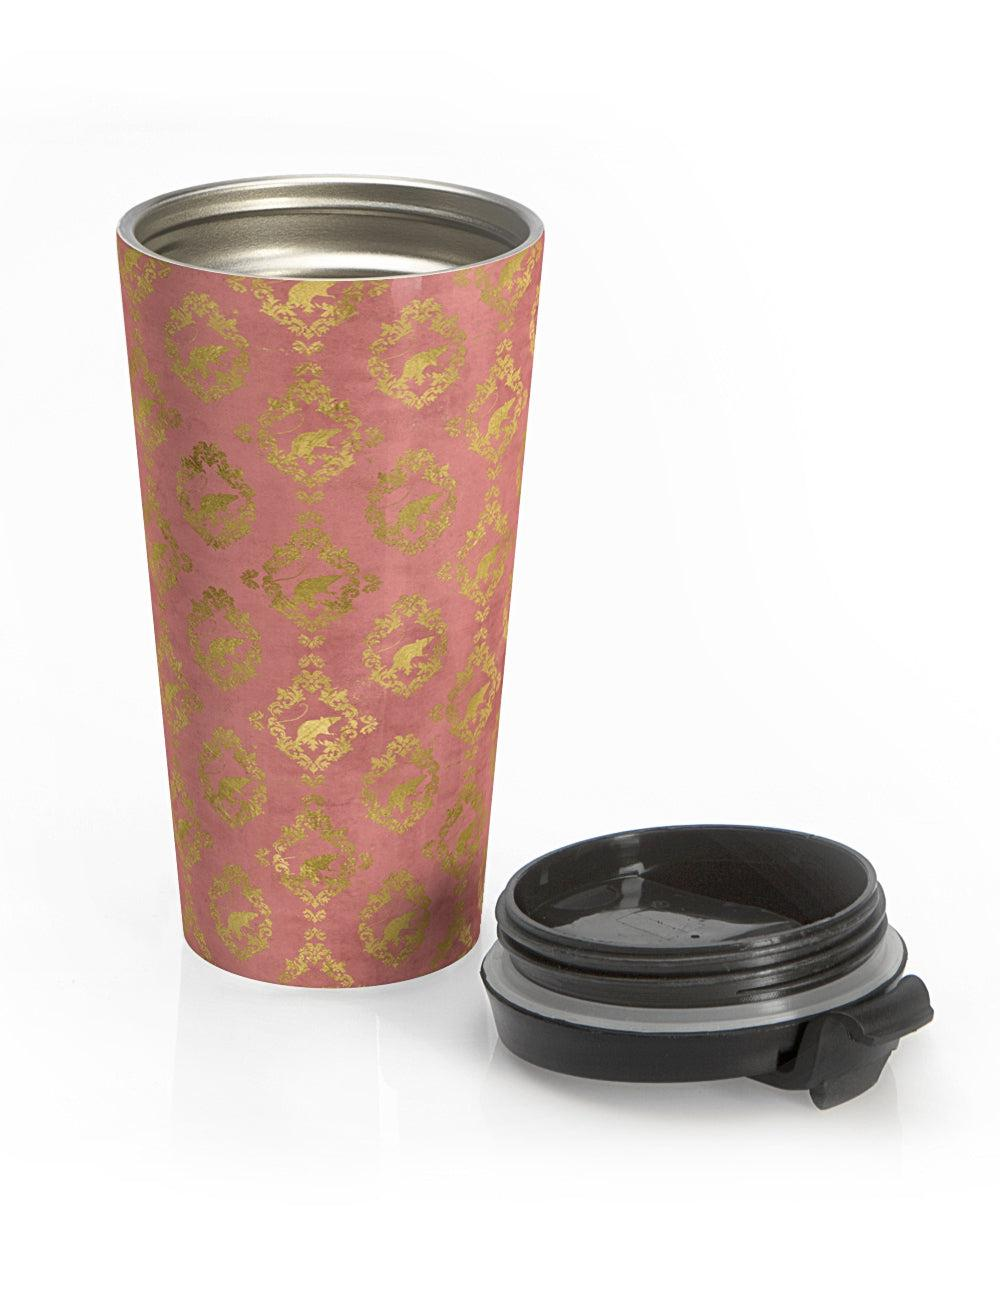 Gilded Rats Travel Tea Tumbler in 'Sudden Blush' - The Asylum Emporium